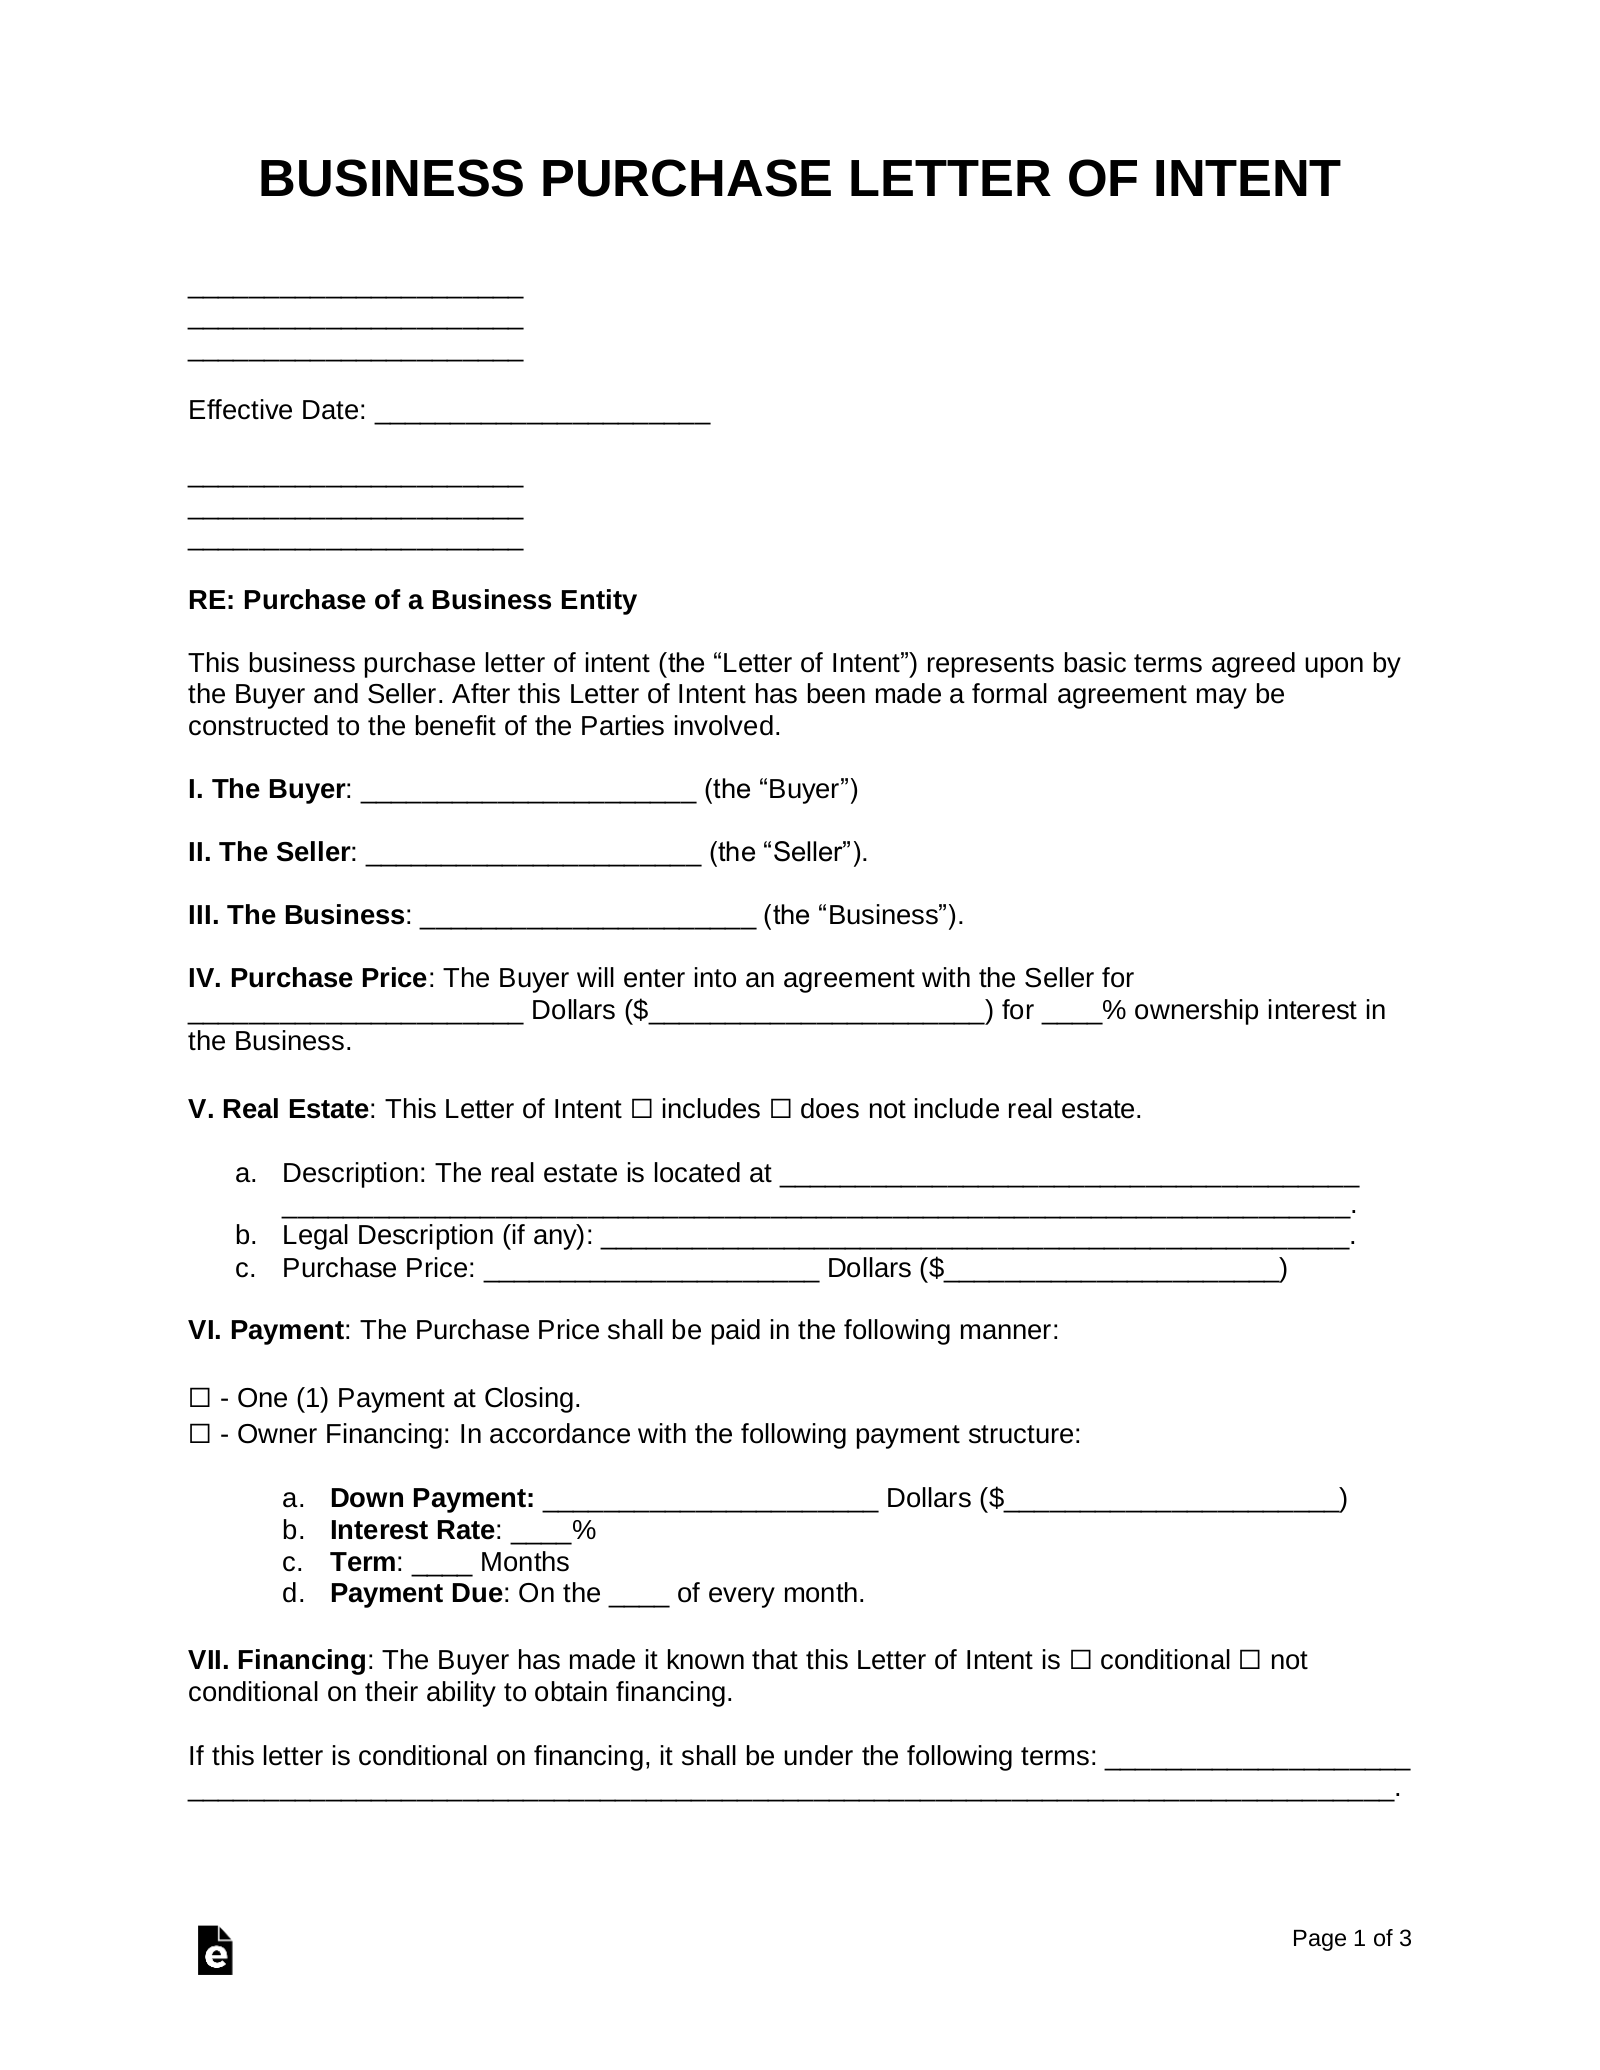 Free Business Purchase Letter of Intent Template - PDF ... on letter of intent template pdf, letter of intent template rfp, letter of interest template microsoft, bill of sale template microsoft word, letter of resignation template microsoft word, cover letter template microsoft word, letter of intent agreement template, professional letter template microsoft word, letter of intent template real estate, letter of intent word doc, thank you letter template microsoft word, certificate of origin template microsoft word, formal business letter template microsoft word, letter of intent template project, letter of intent examples business, letter of intent to purchase, official letter template microsoft word, letter of intent to lease commercial space, christmas letter template microsoft word, resignation letter sample microsoft word,